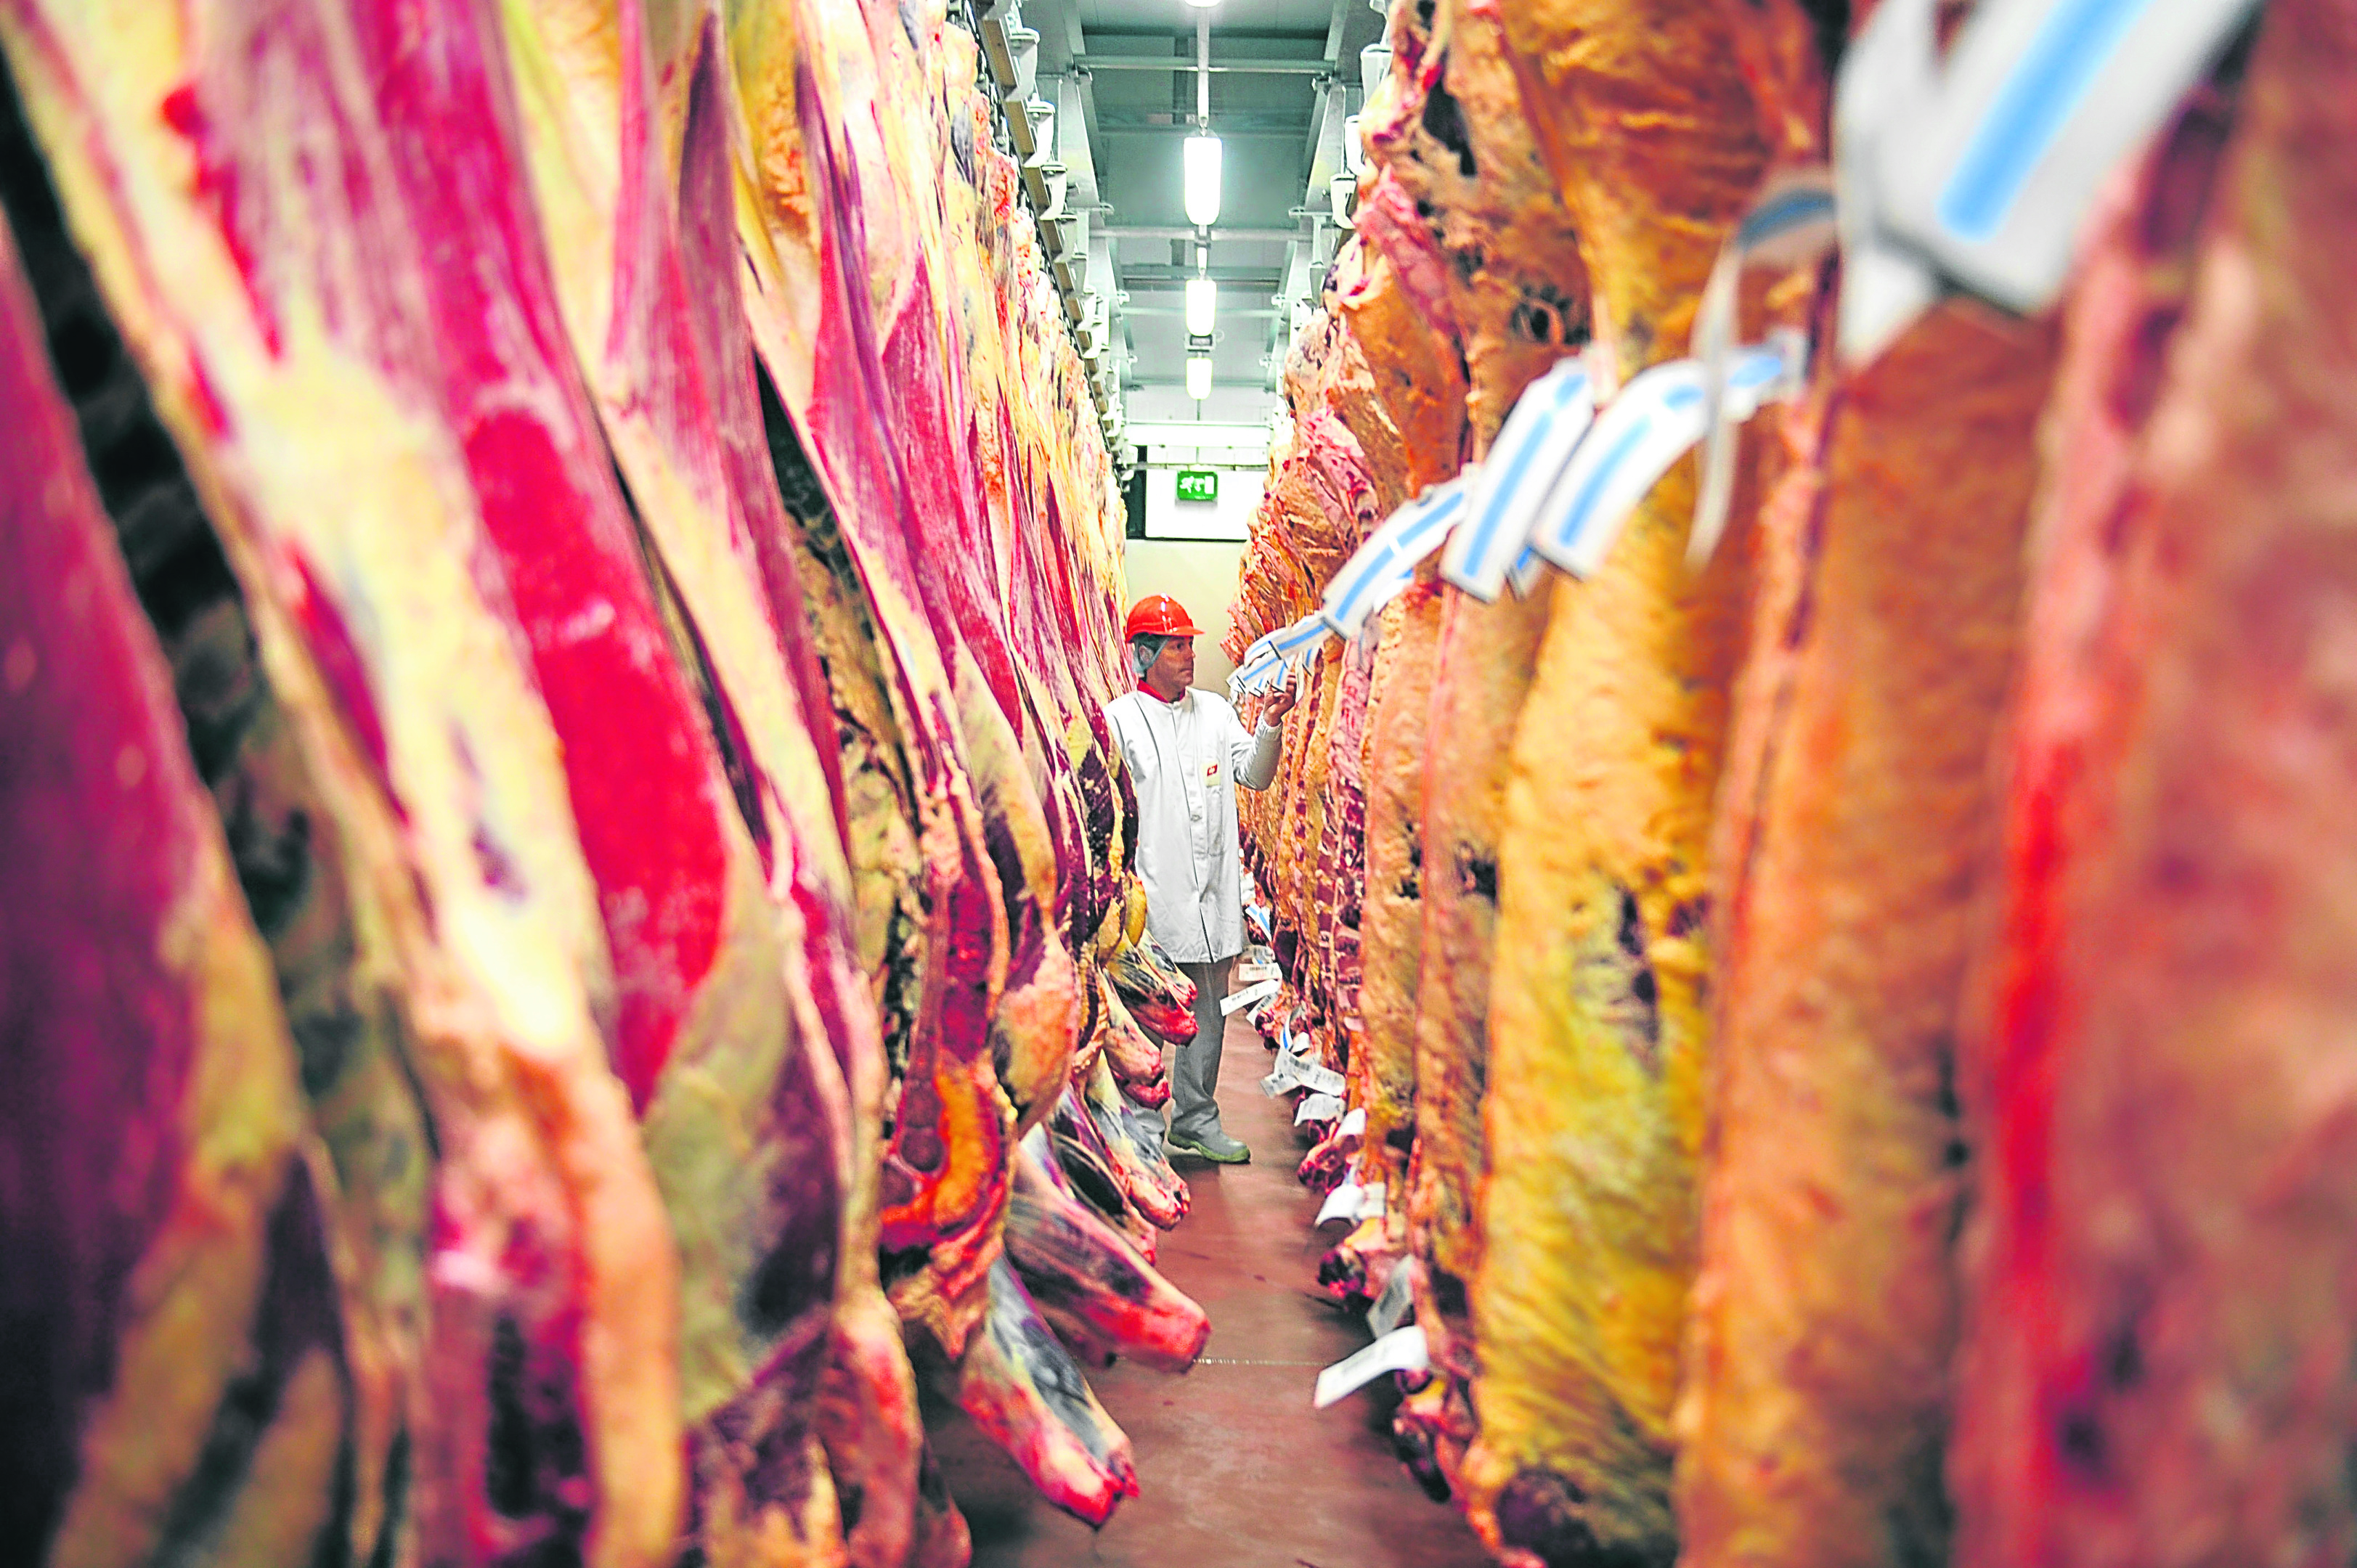 QMS says abattoirs are less productive during the coronavirus pandemic.